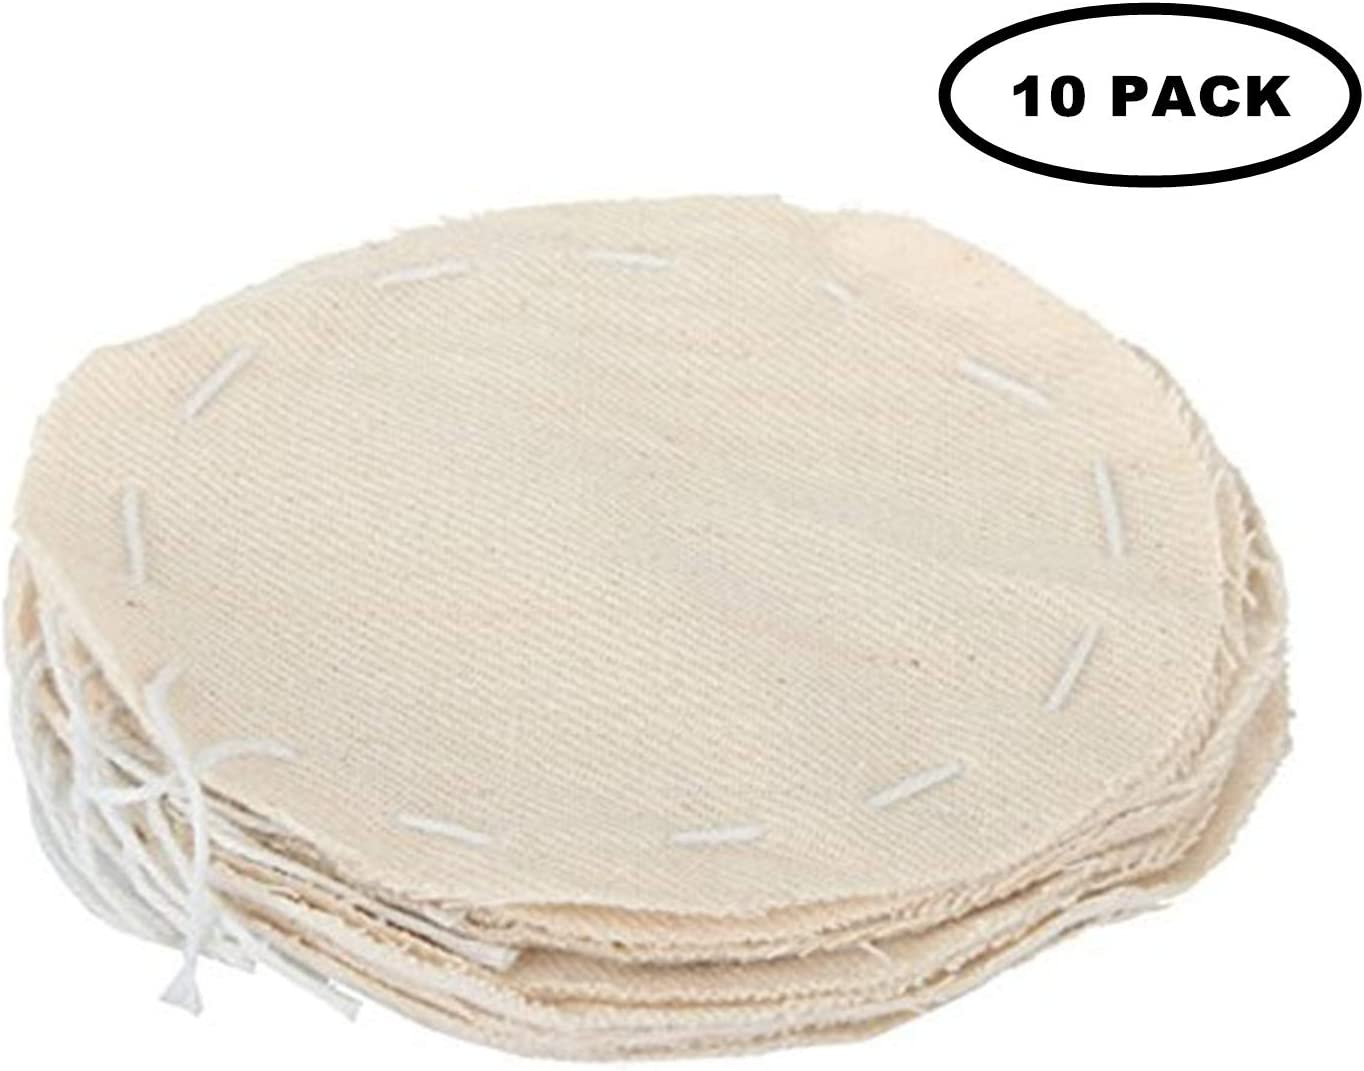 PPX Coffee Syphon Cloth Replacement Filter for Hario Syphon, Yama Siphon and Other Syphon Coffee Maker, Balance Syphon Coffee Maker, Vacuum Pot Filters - Pack of 10 pcs